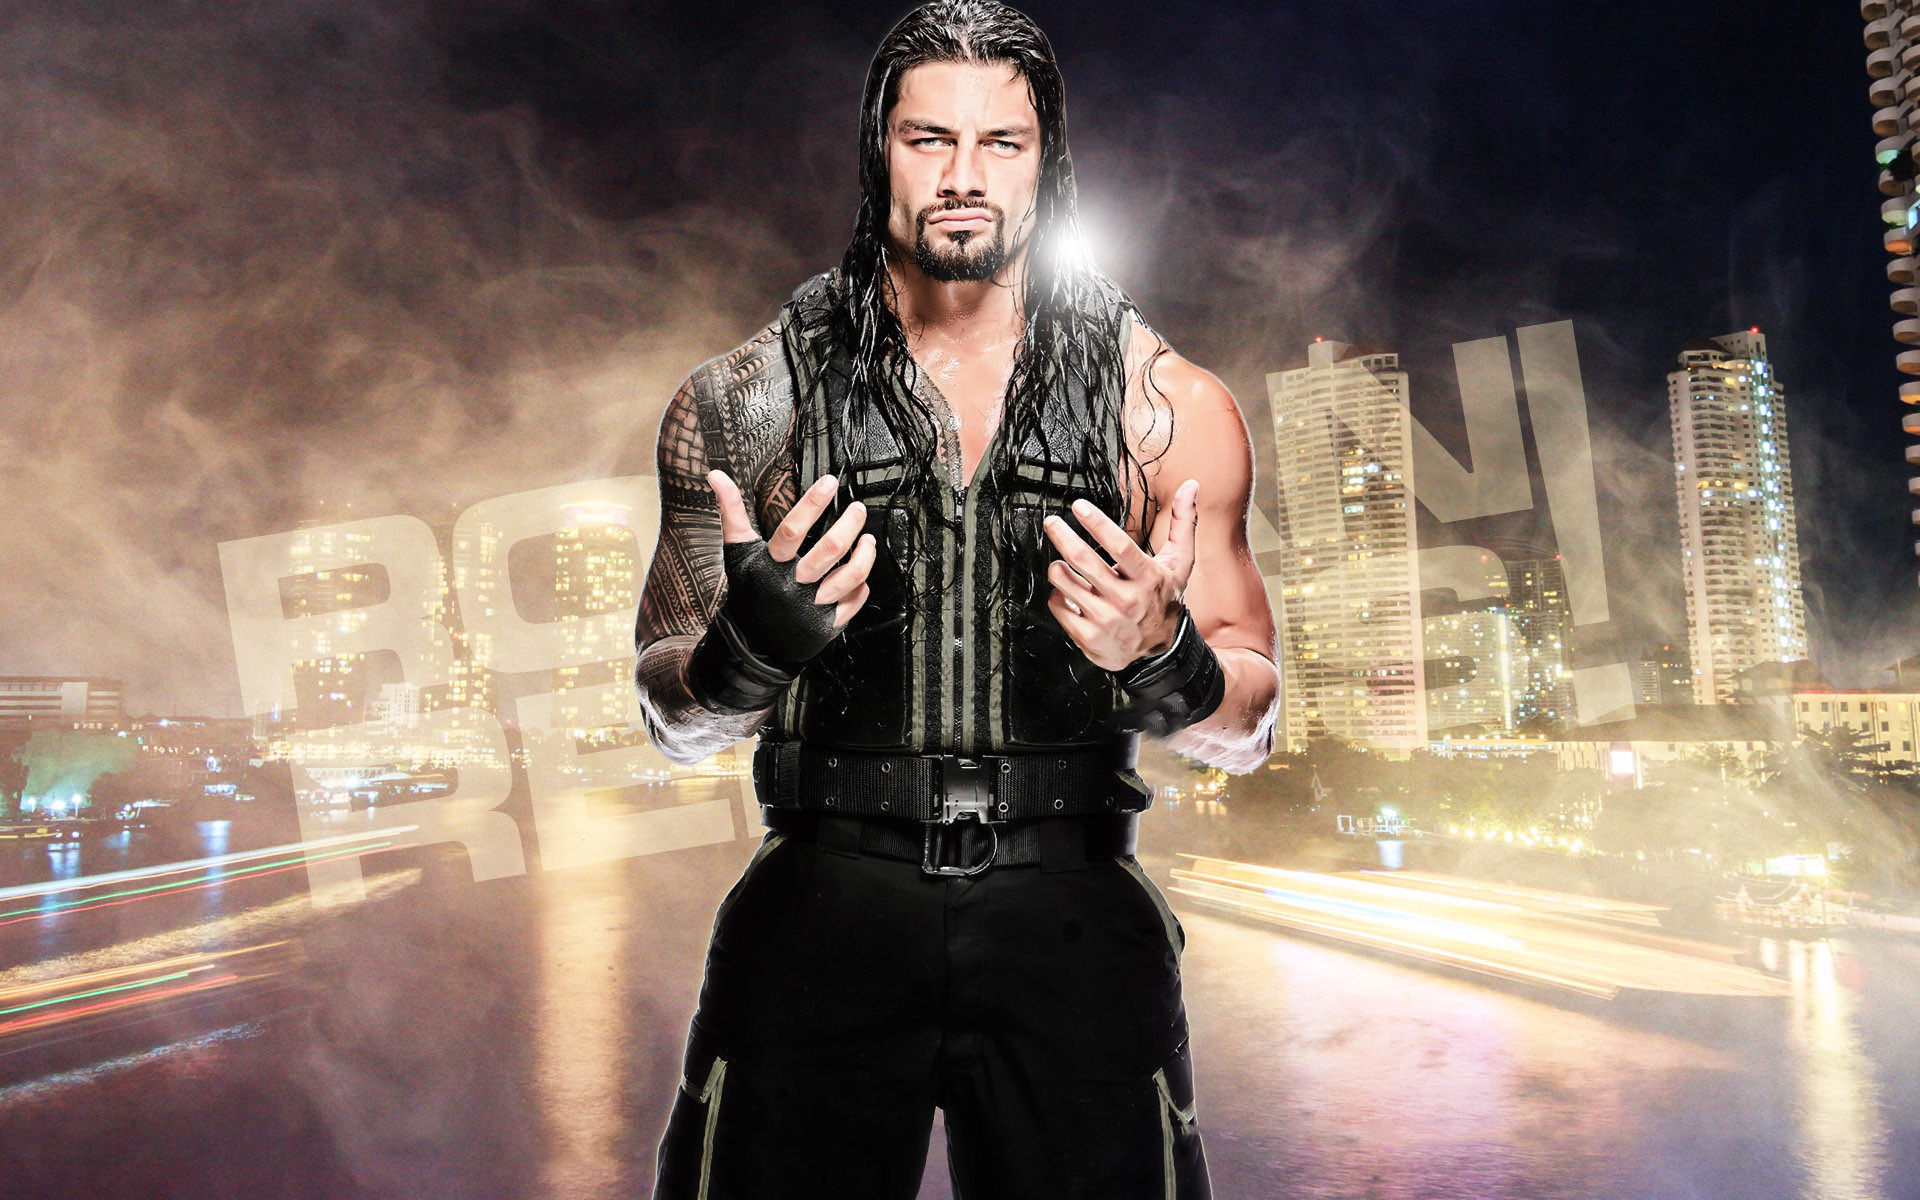 1920x1200 Free Download WWE Roman Reigns HD Wallpaper 2016